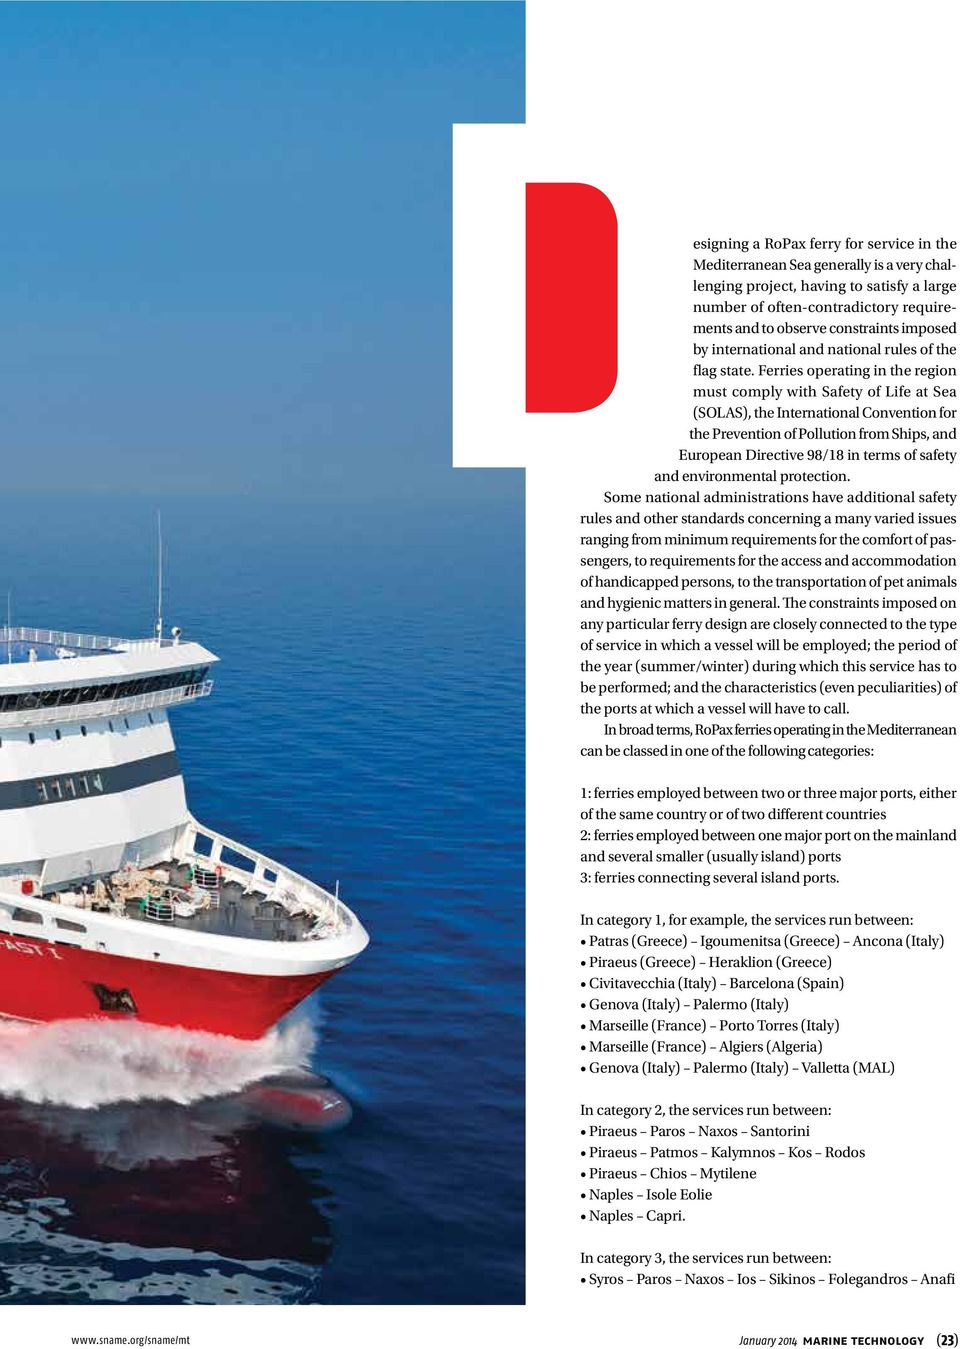 Ferries operating in the region must comply with Safety of Life at Sea (SOLAS), the International Convention for the Prevention of Pollution from Ships, and European Directive 98/18 in terms of